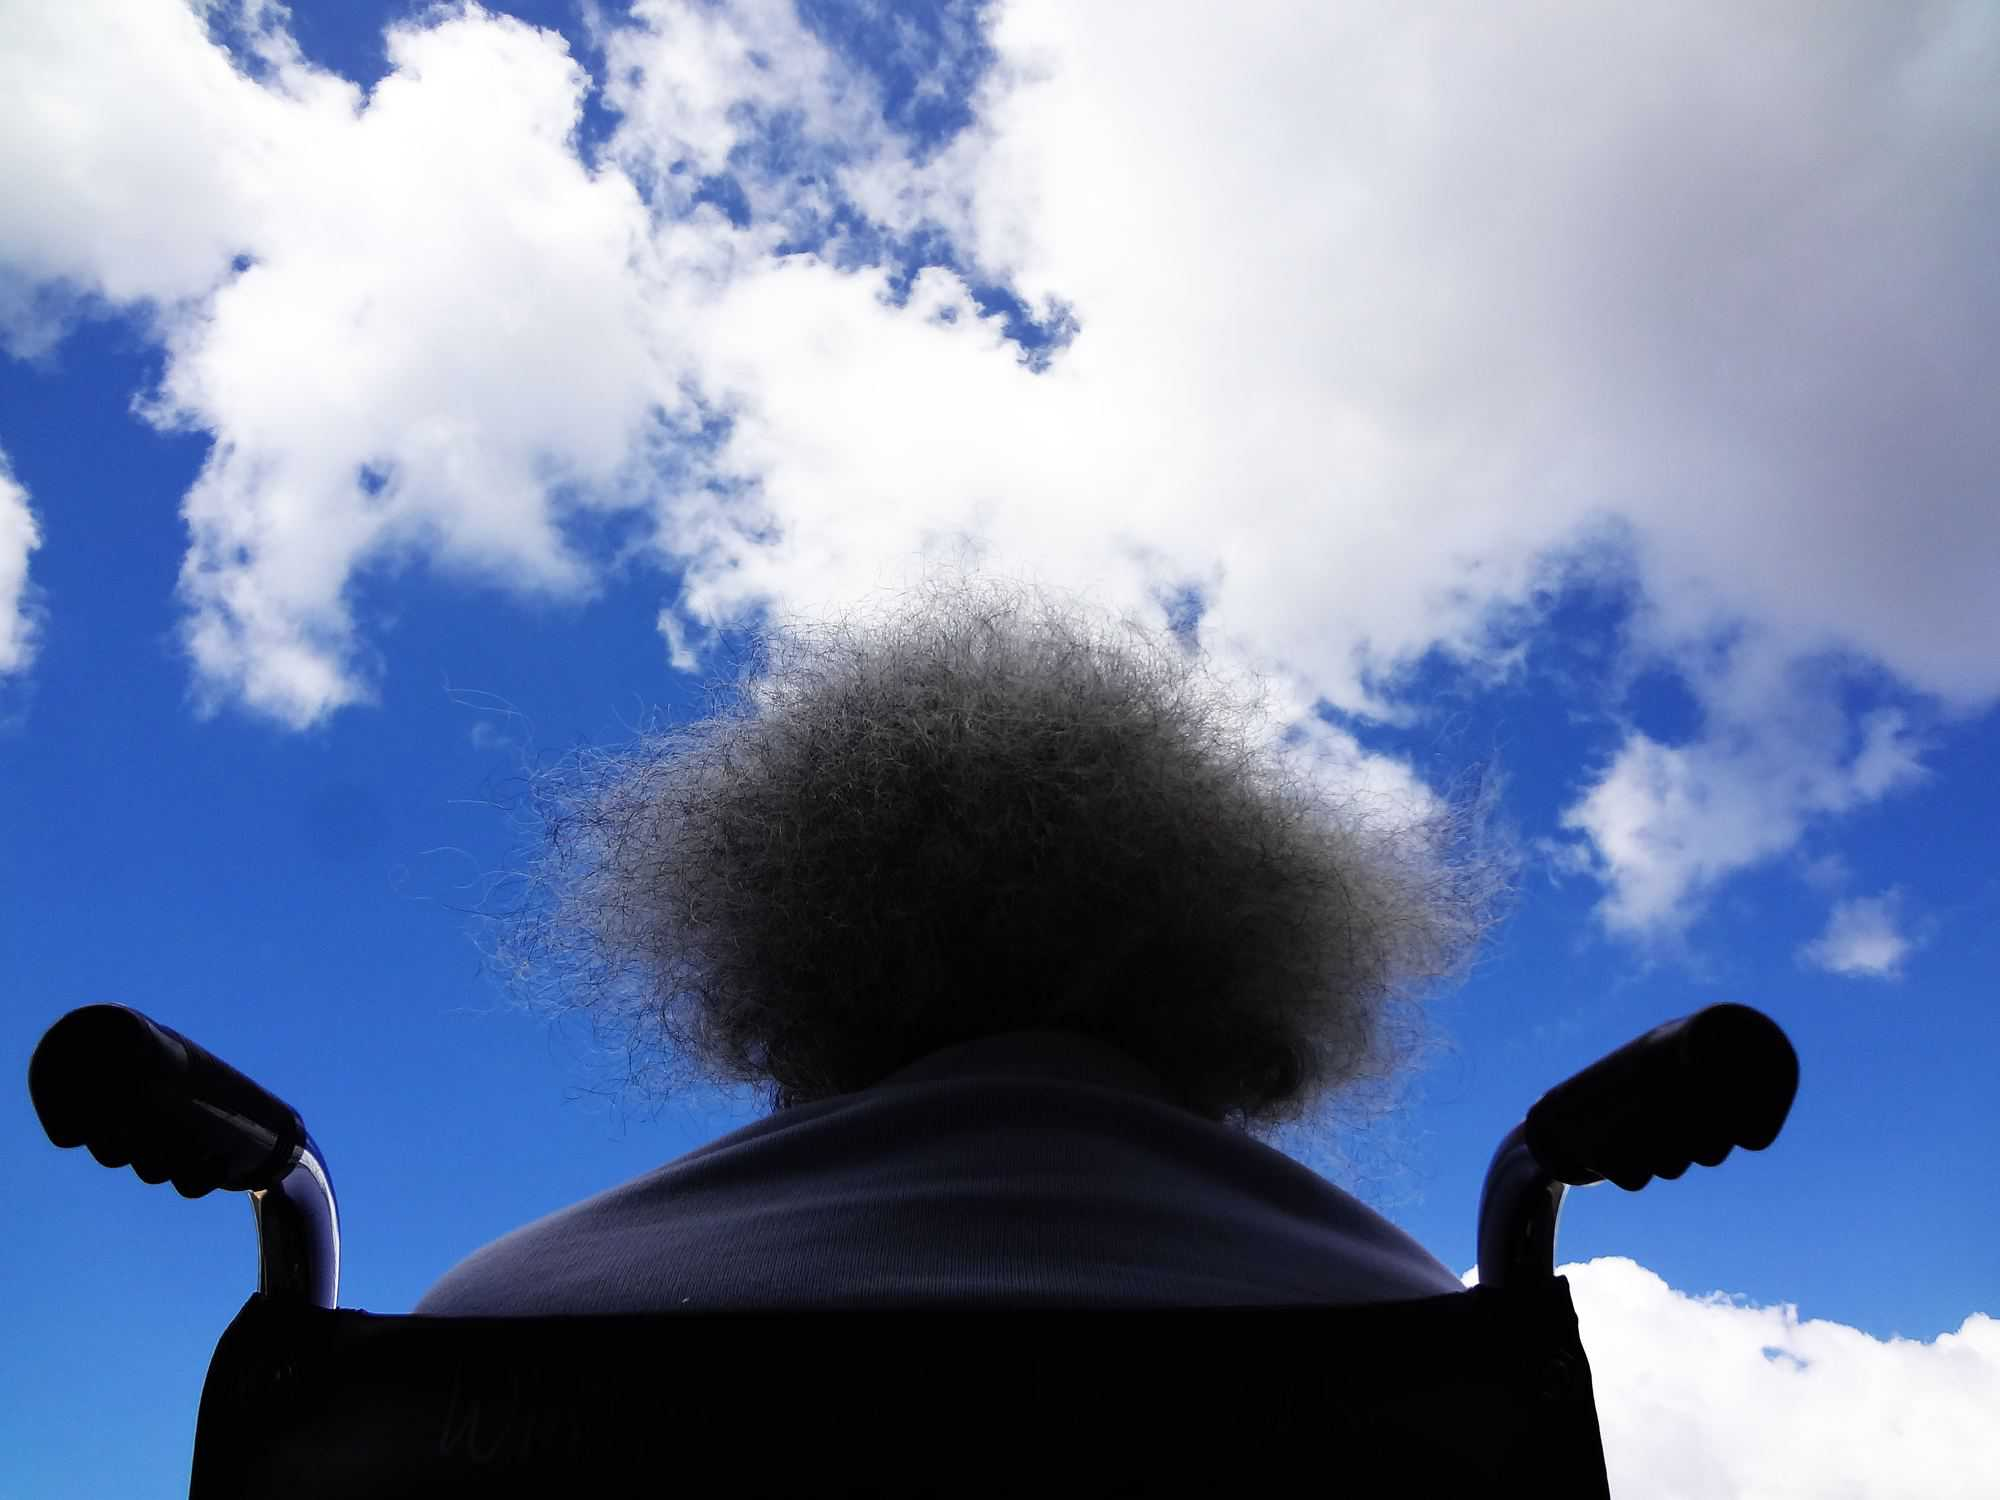 person in a wheel chair from behind with a blue sky overhead